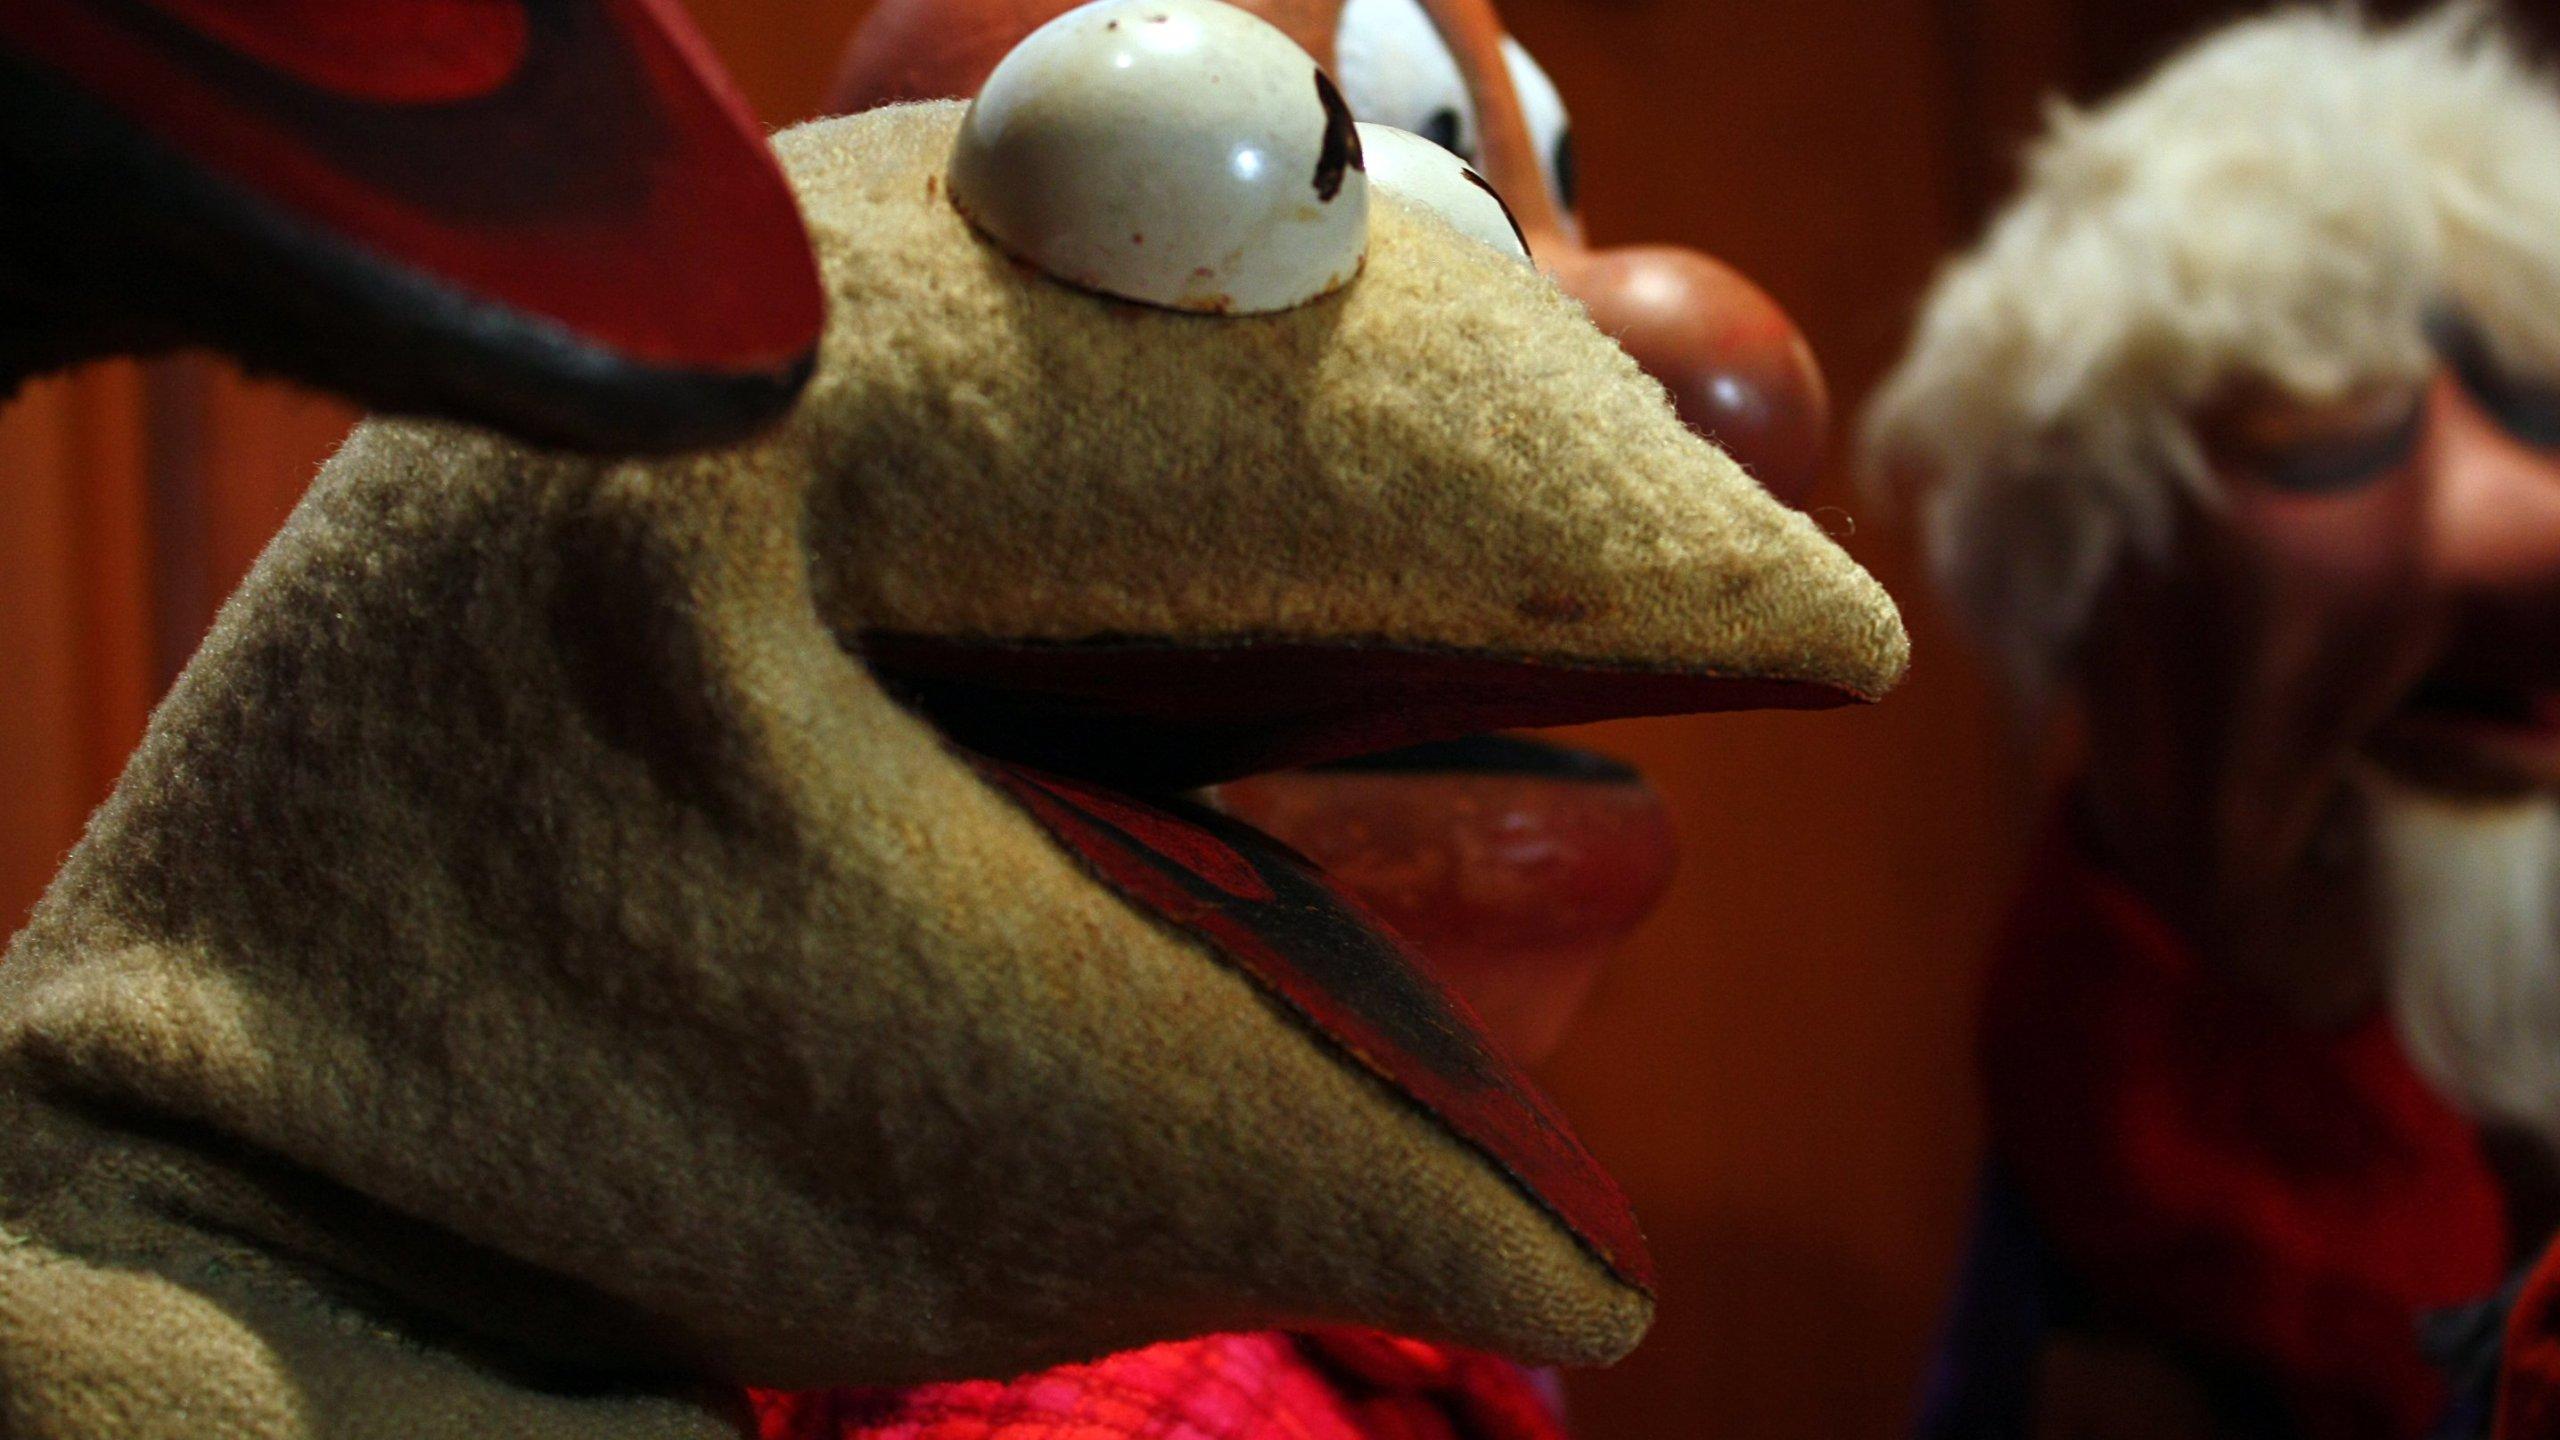 11a The Muppets: The Adult Origins Of 'Mahna Mahna' And More Things You Didn't Know